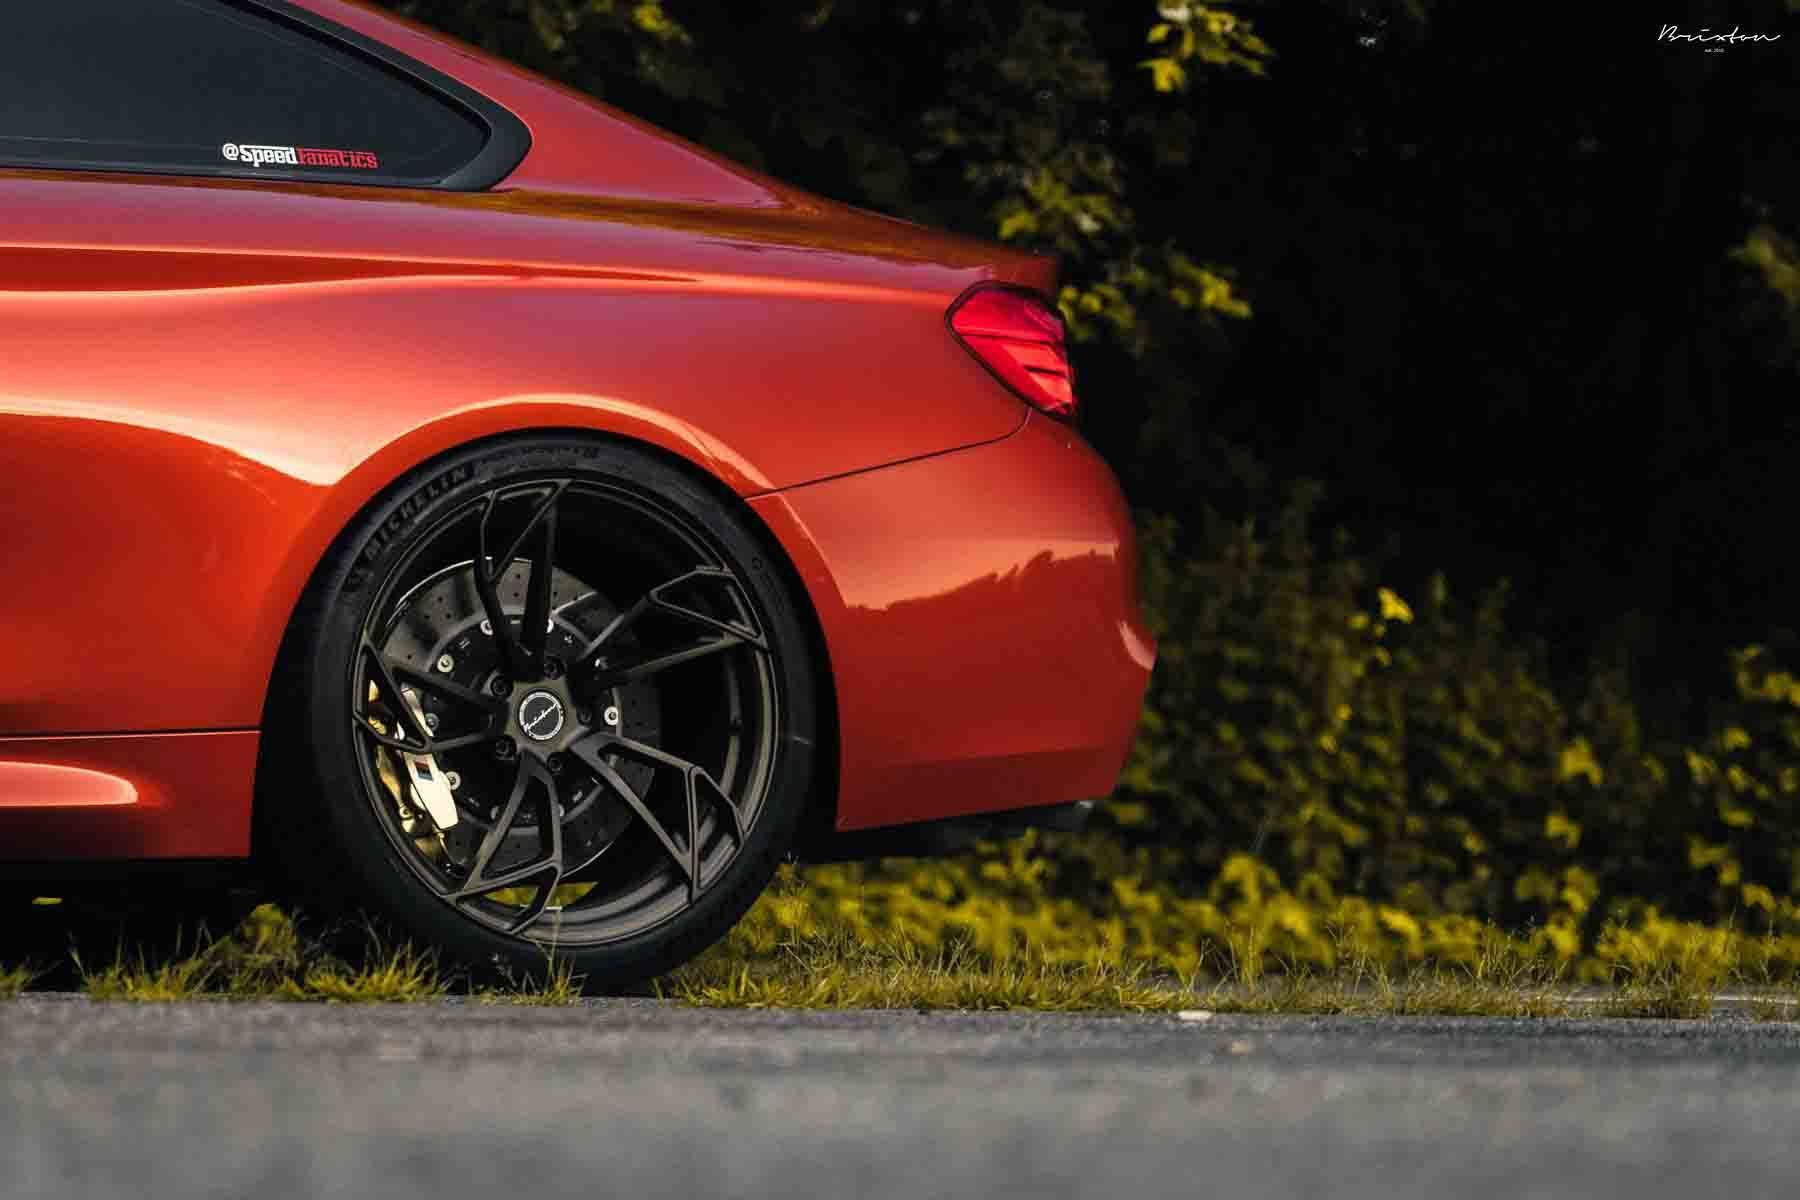 images-products-1-1927-232974215-brixton-forged-wheels-red-bmw-m3-f80-brixton-forged-pf1-ultrasport-1-piece-concave-forged-wheels.jpg